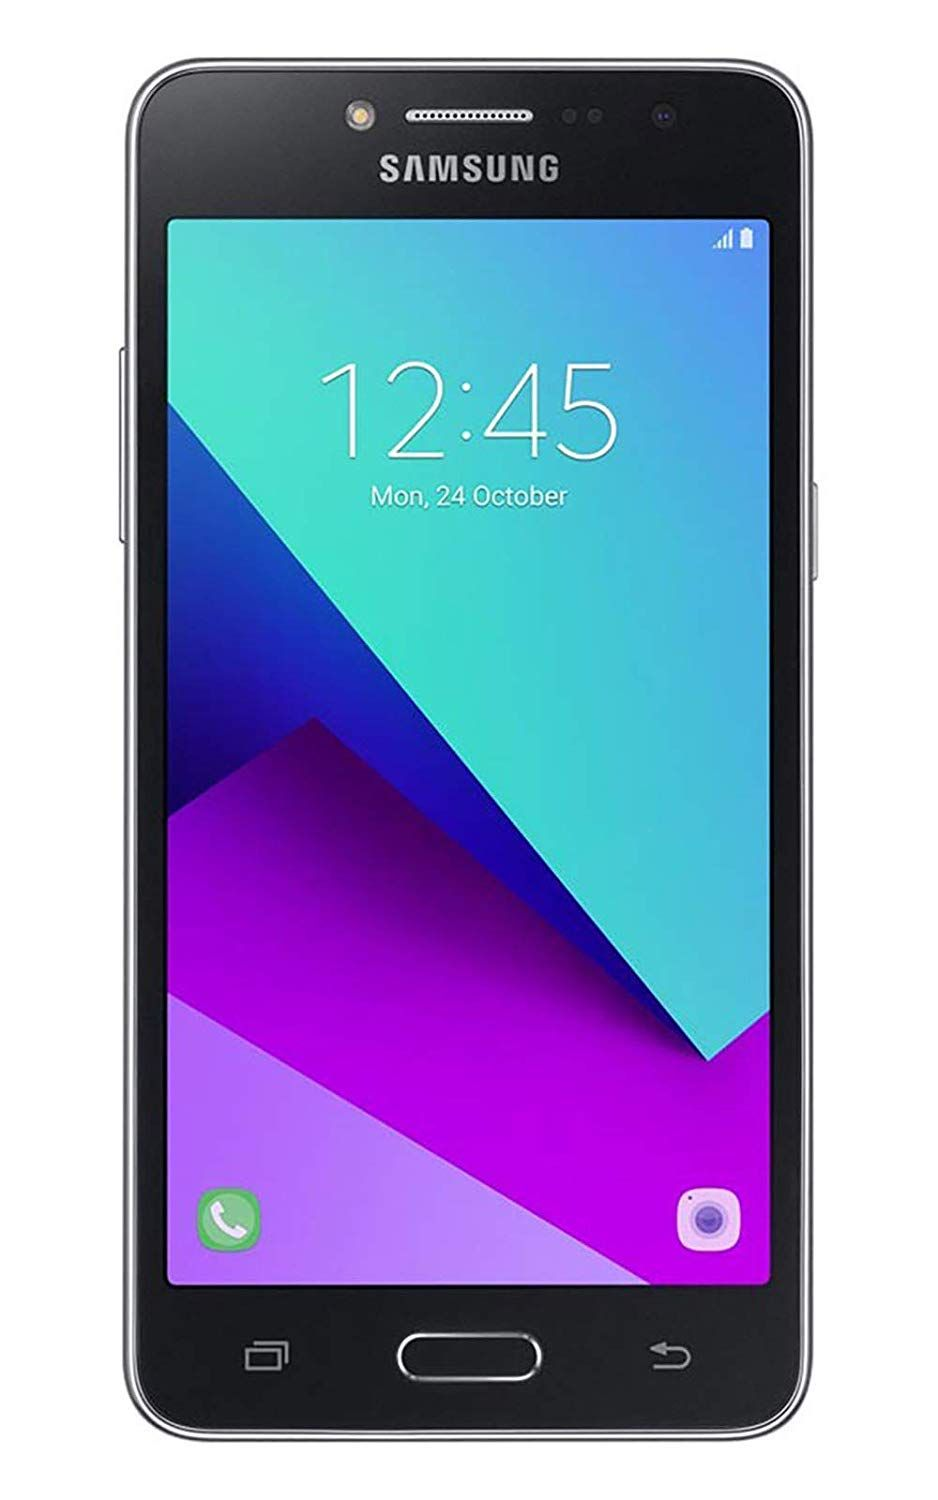 Bestebuys Hot New Samsung Mobile Phone Deals 97 83 Samsung Galaxy J2 Prime 16gb 5 0 4g Lte Gsm Dual Sim Factory Un Samsung Galaxy Samsung Galaxy J3 Samsung